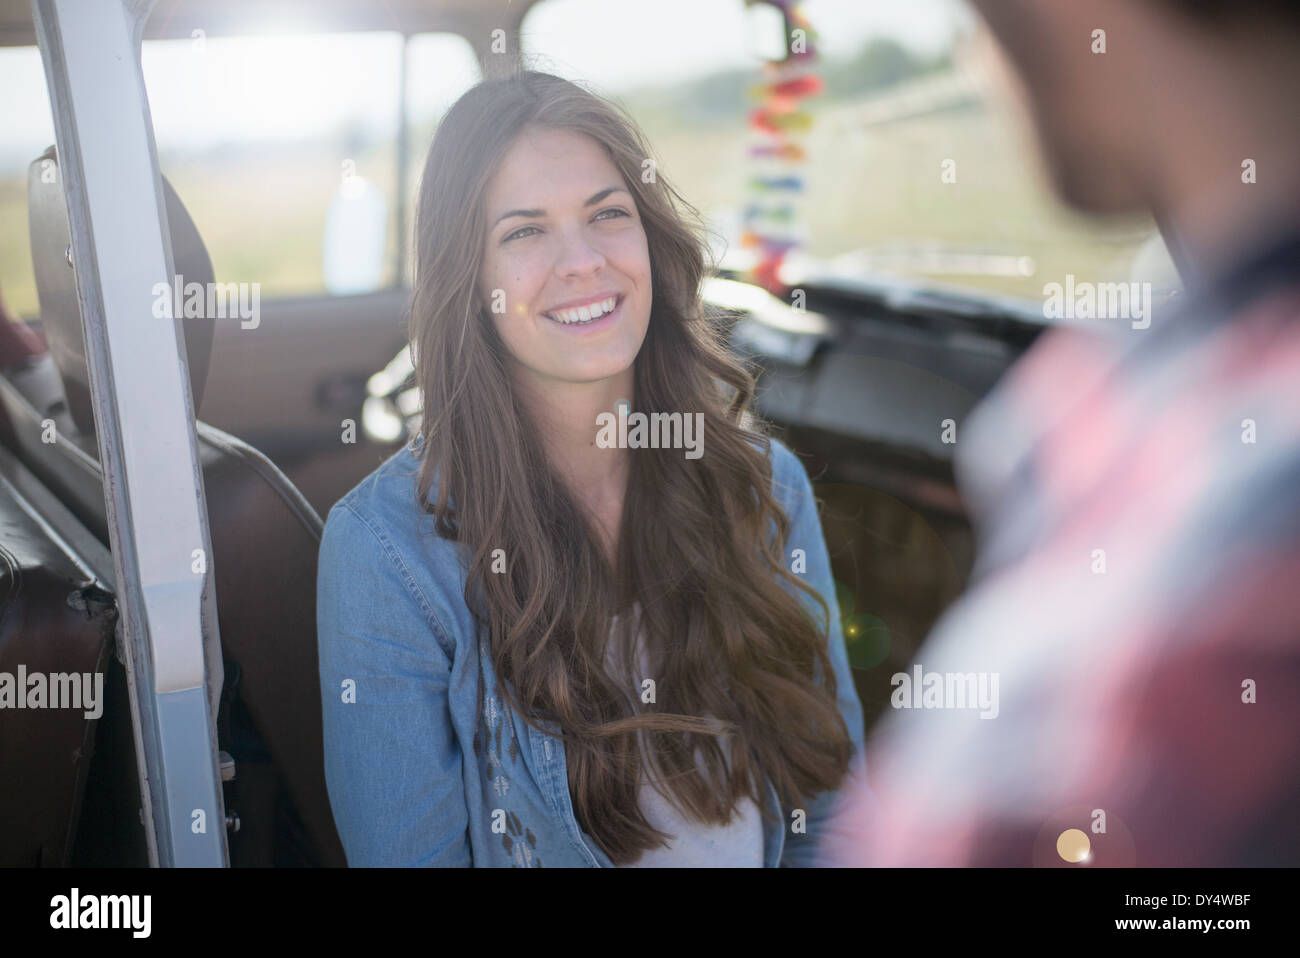 Young woman with long brown hair, smiling - Stock Image